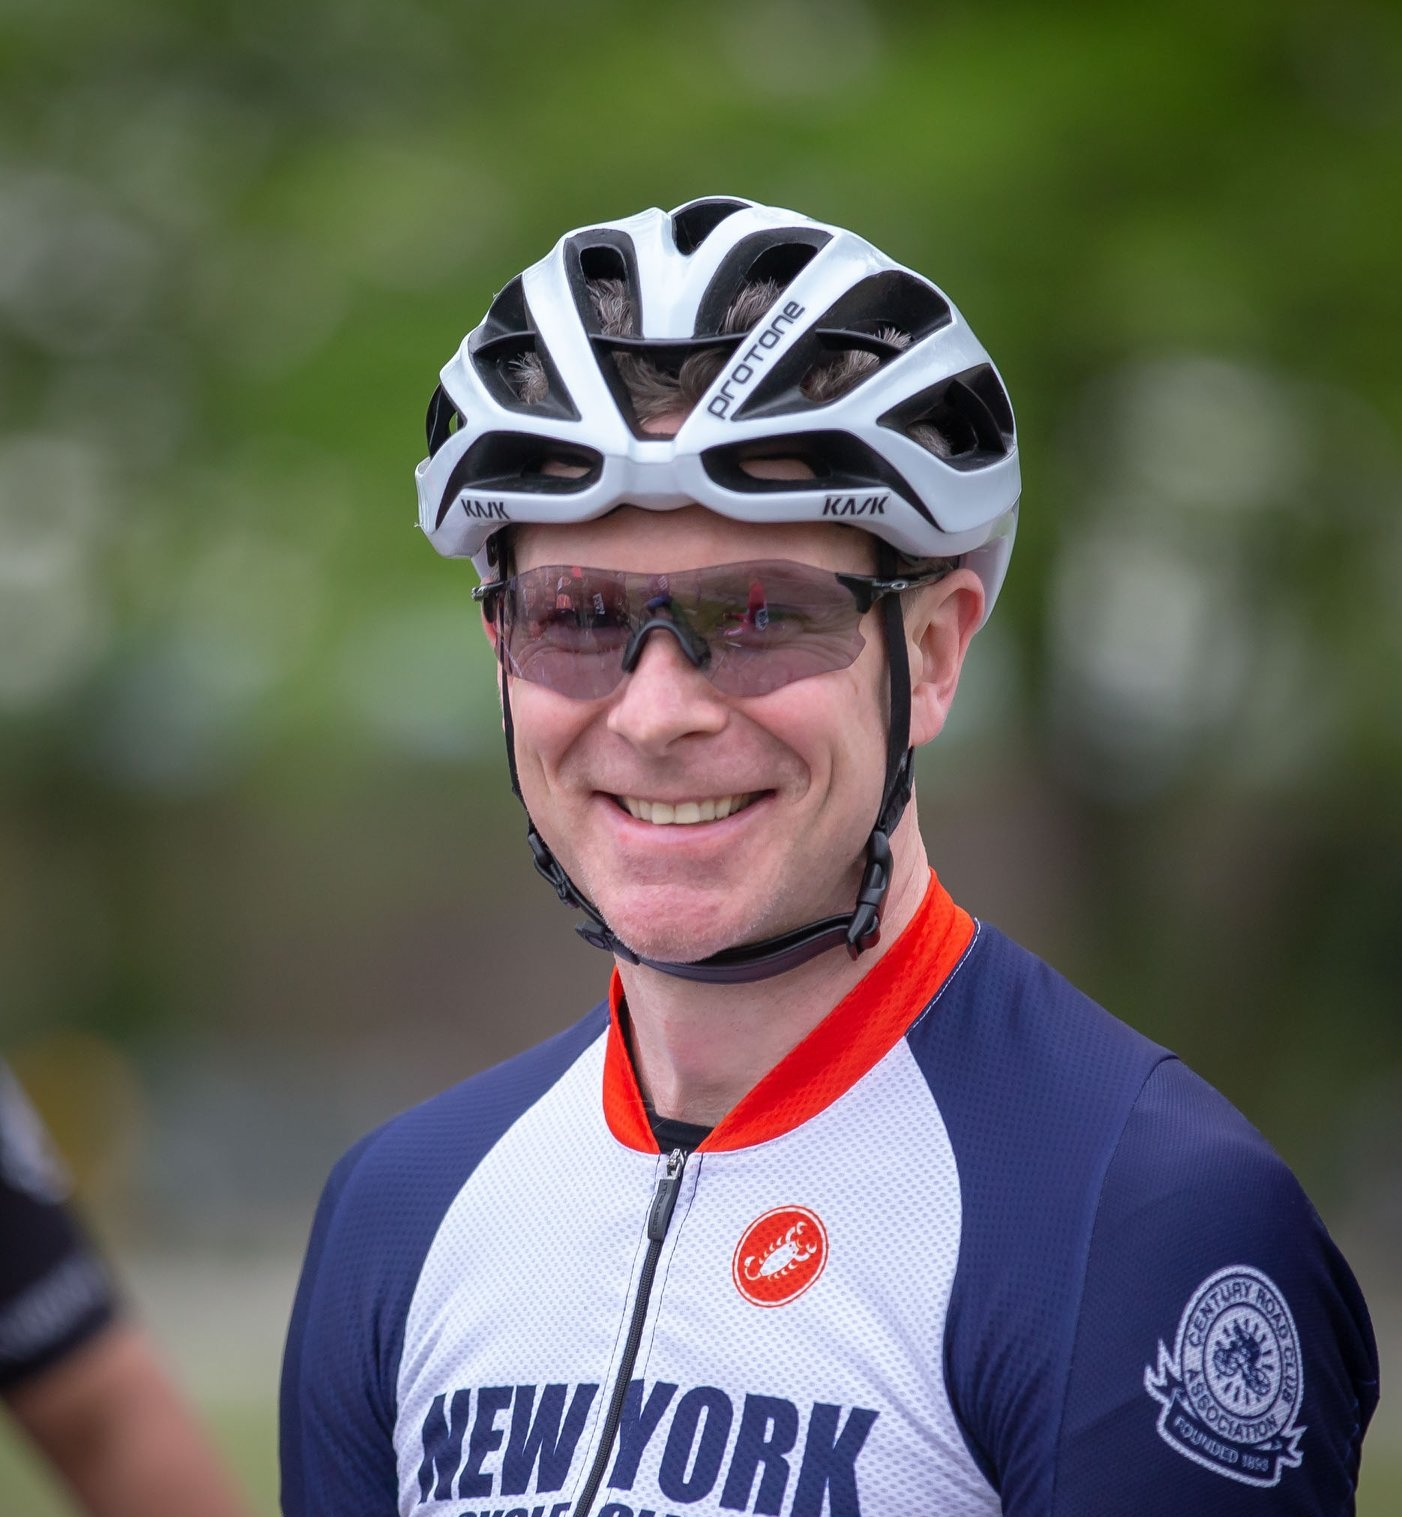 Alan Ganly - When he is not riding his bike, Allan is thinking about riding his bike. A former triathlete, he is an active member of NYCC Racing's Triathlete Rescue Program. While not a strict velominati, he firmly believes in Rule #5.